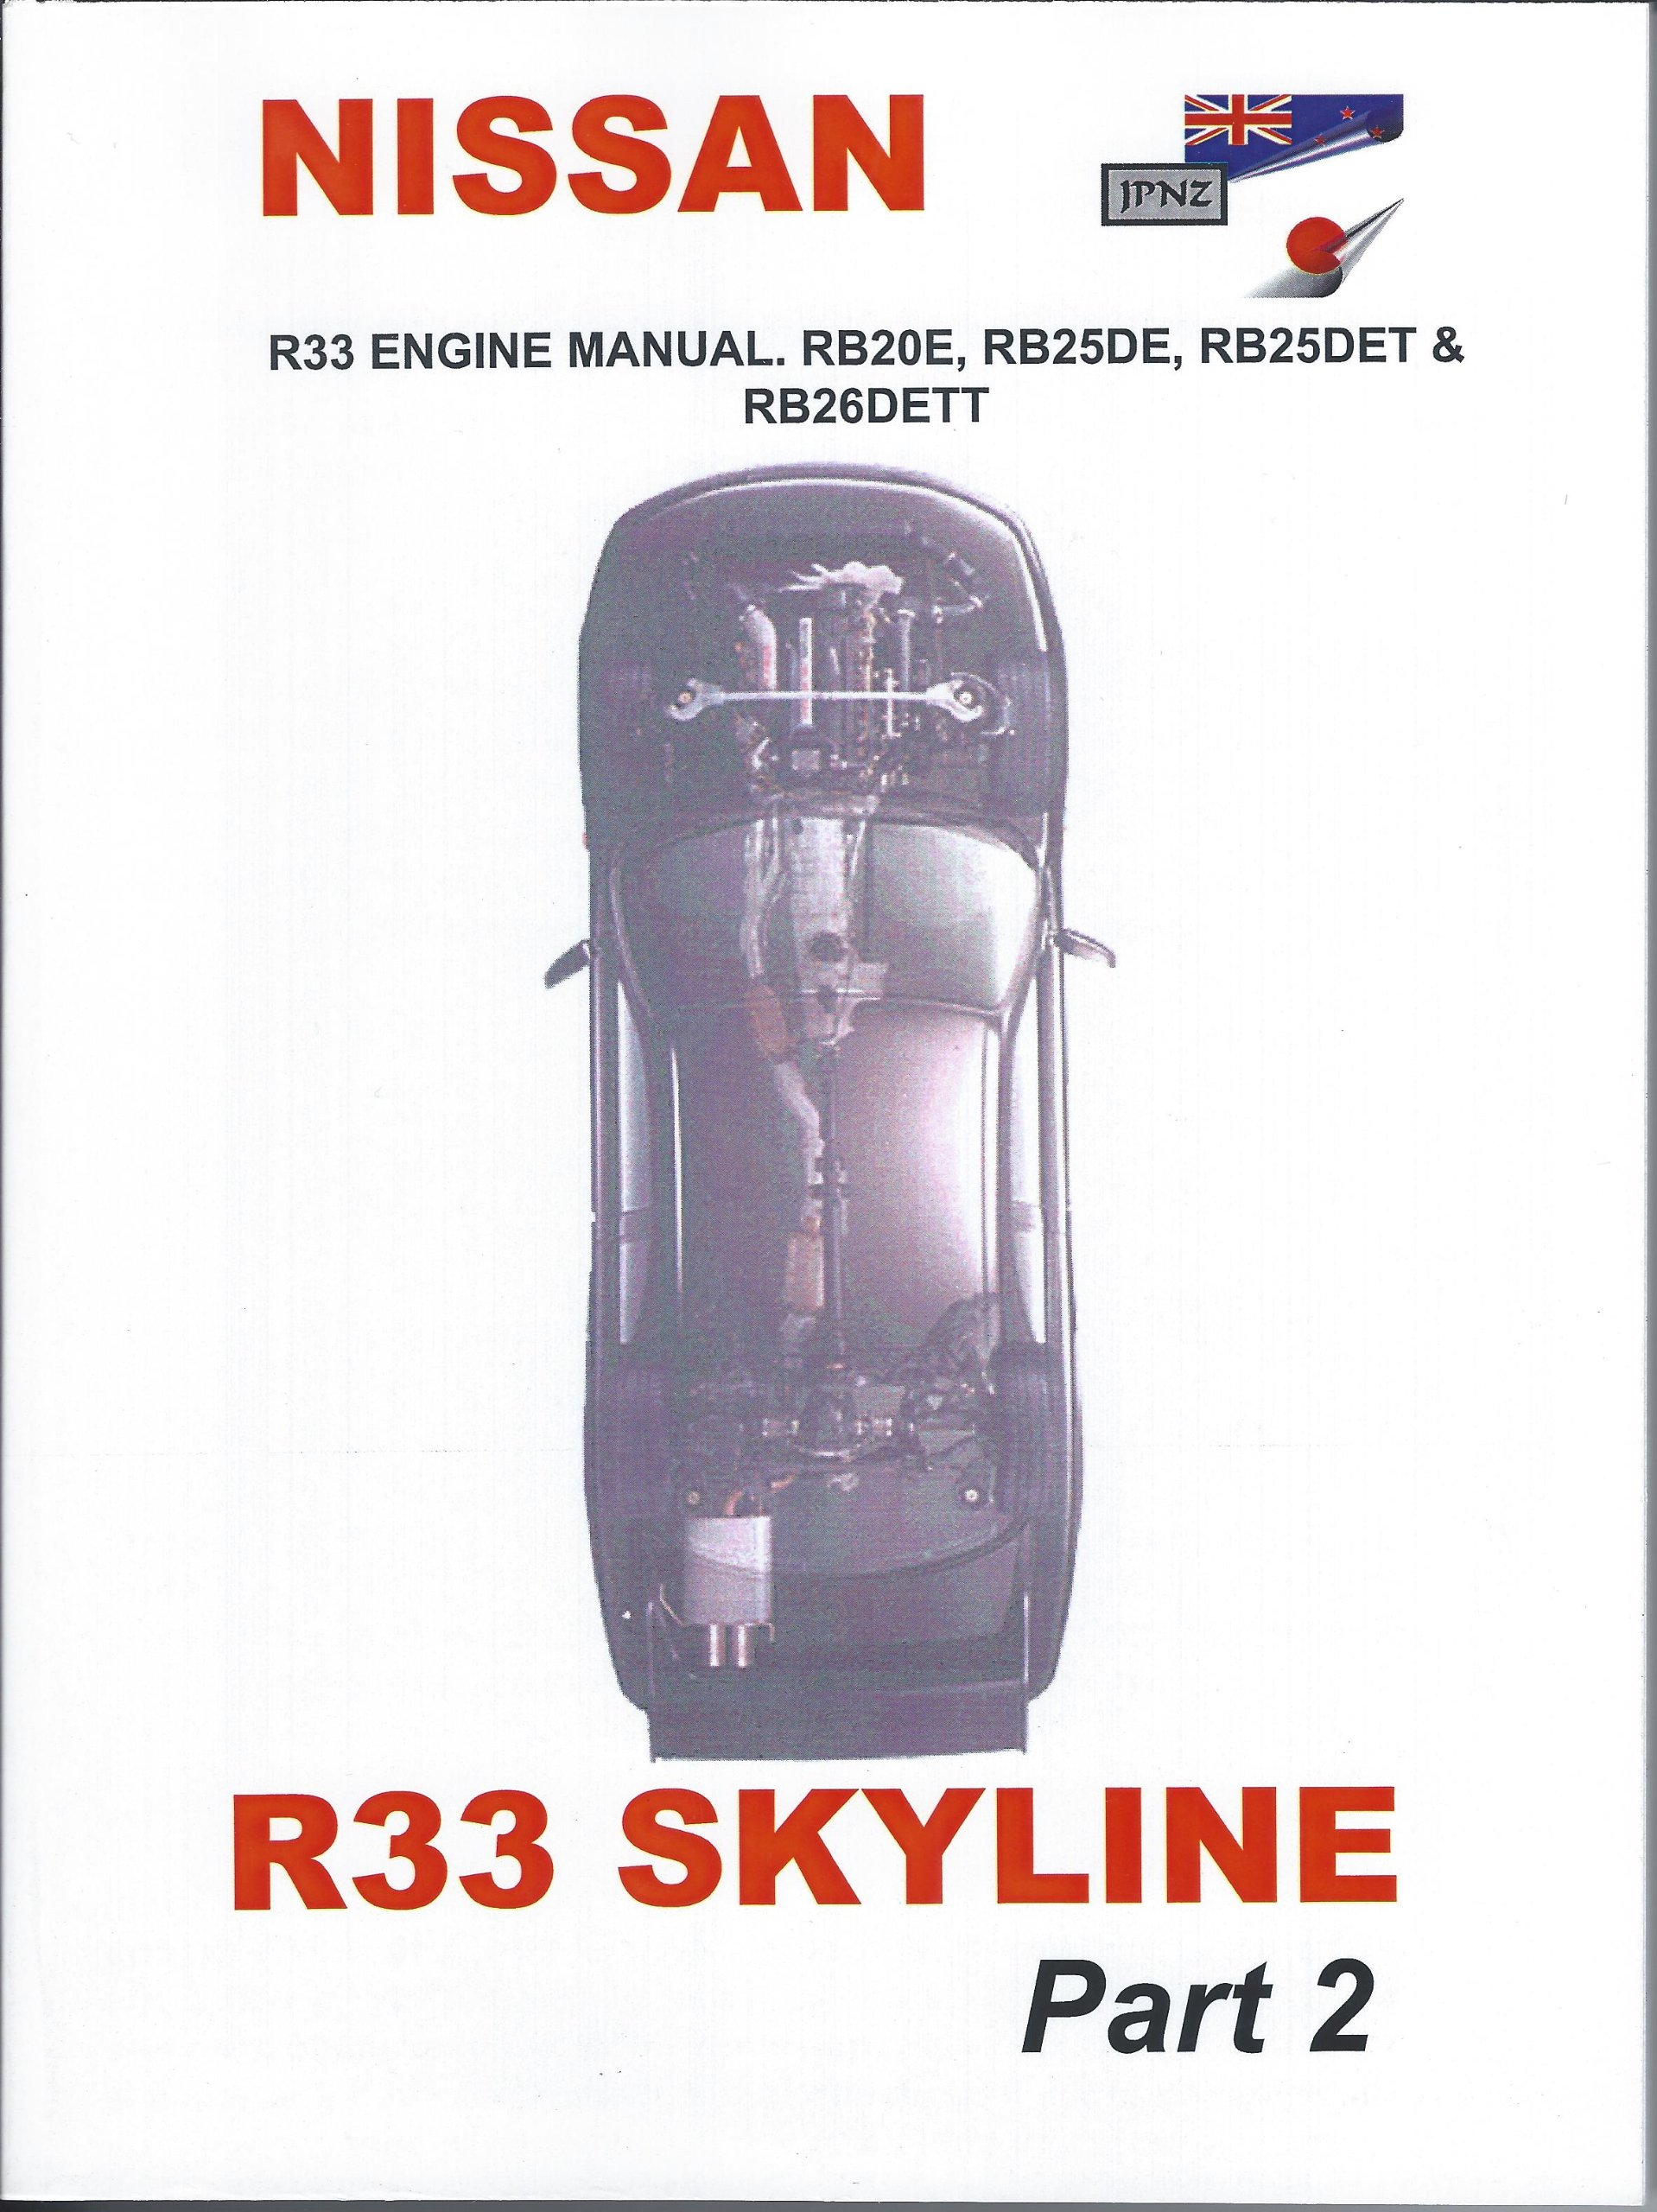 Nissan R33 Skyline Engine Manual Parts 1 & 2 (engines RB20E, RB25DE,  RB25DET & RB26DETT): Amazon.co.uk: JPNZ International Ltd: Books